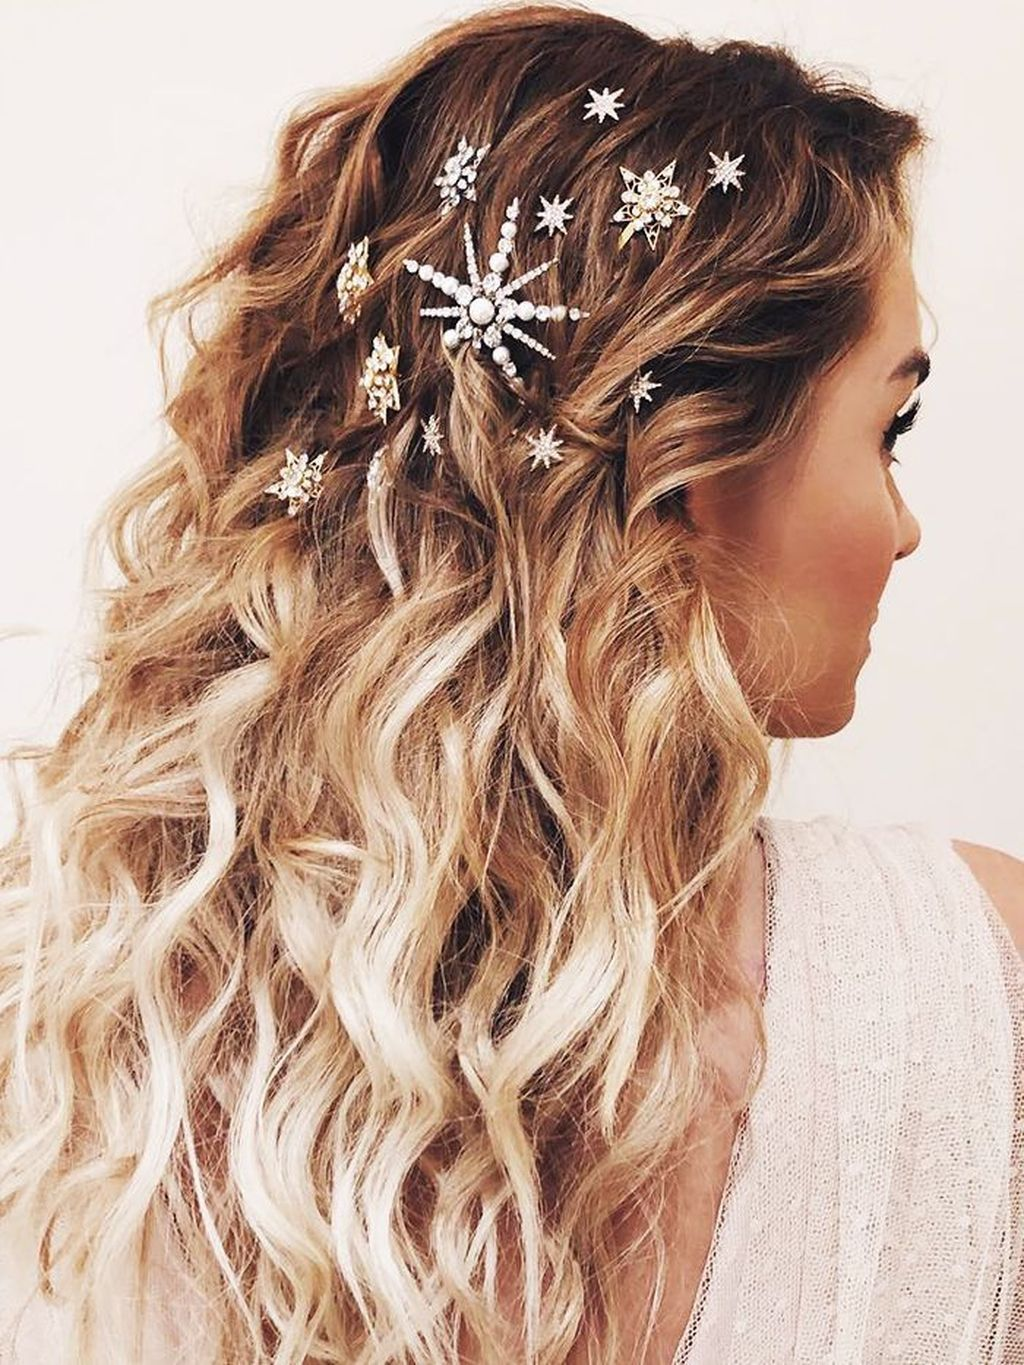 39 Awesome Hairstyles Christmas Party Ideas Addicfashion Winter Hair Trends Hair Styles Long Hair Styles